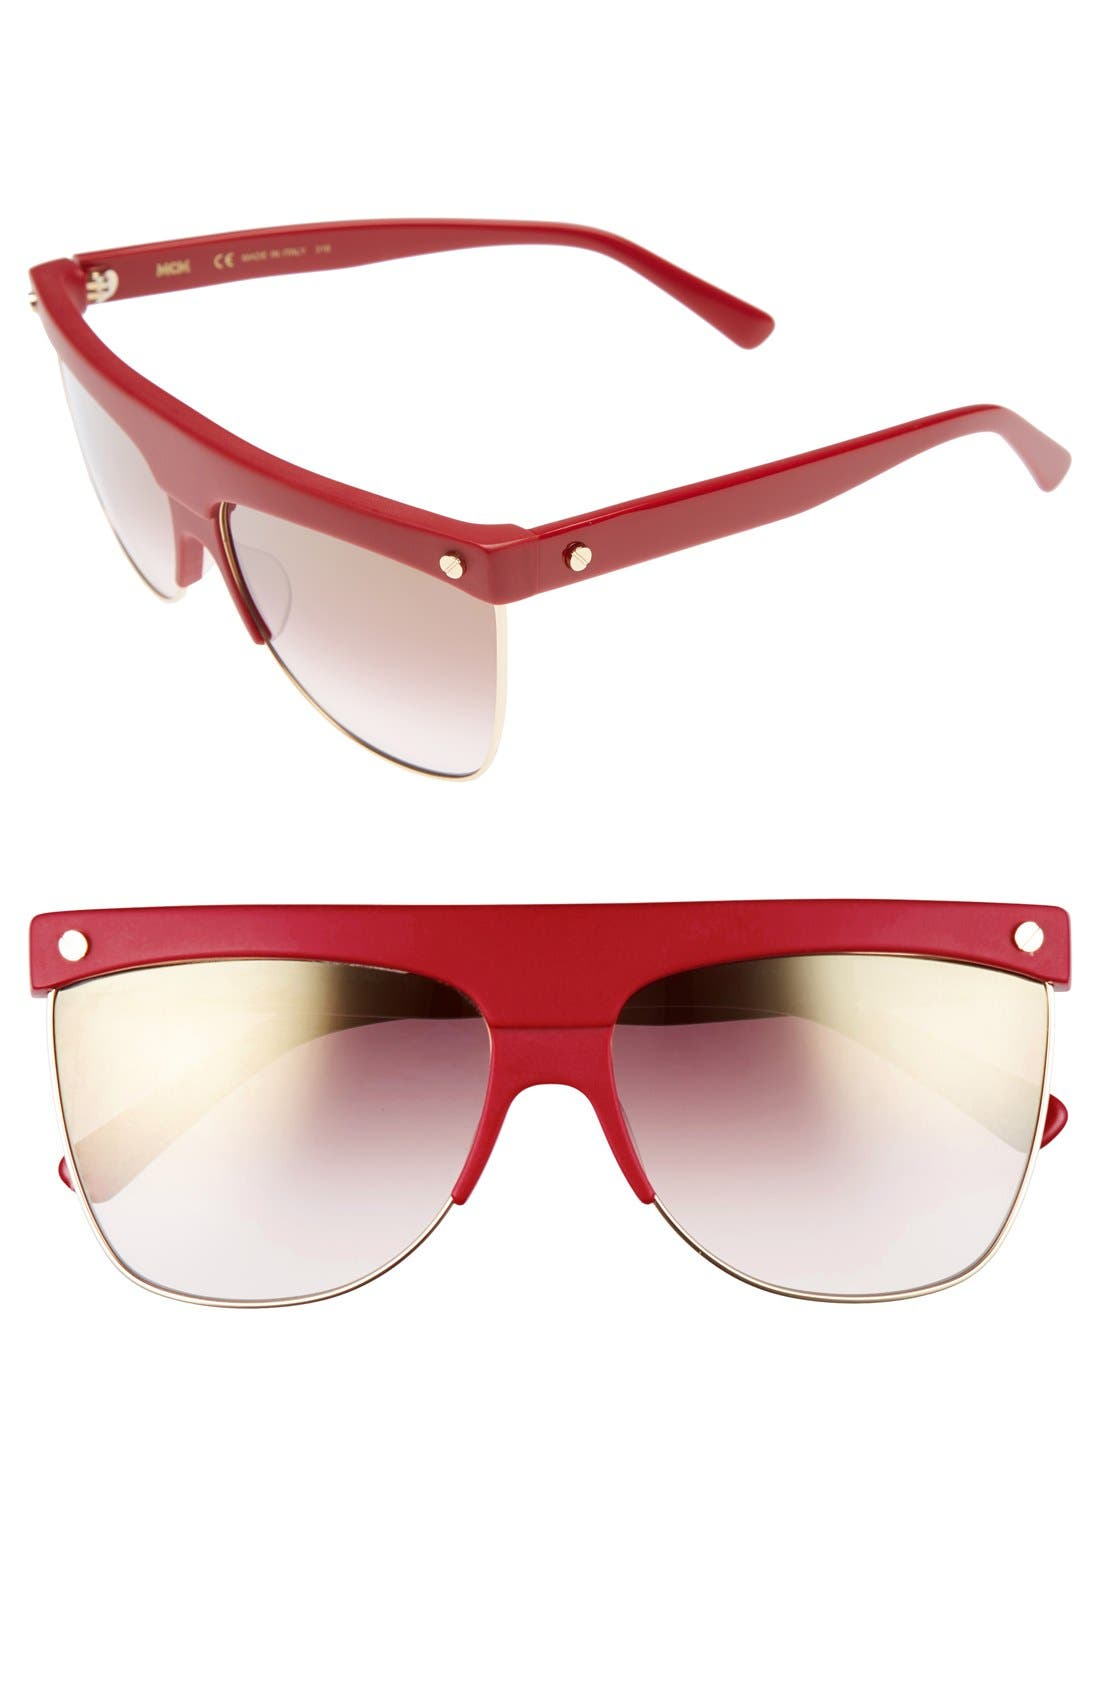 60mm Aviator Sunglasses,                         Main,                         color, Rouge